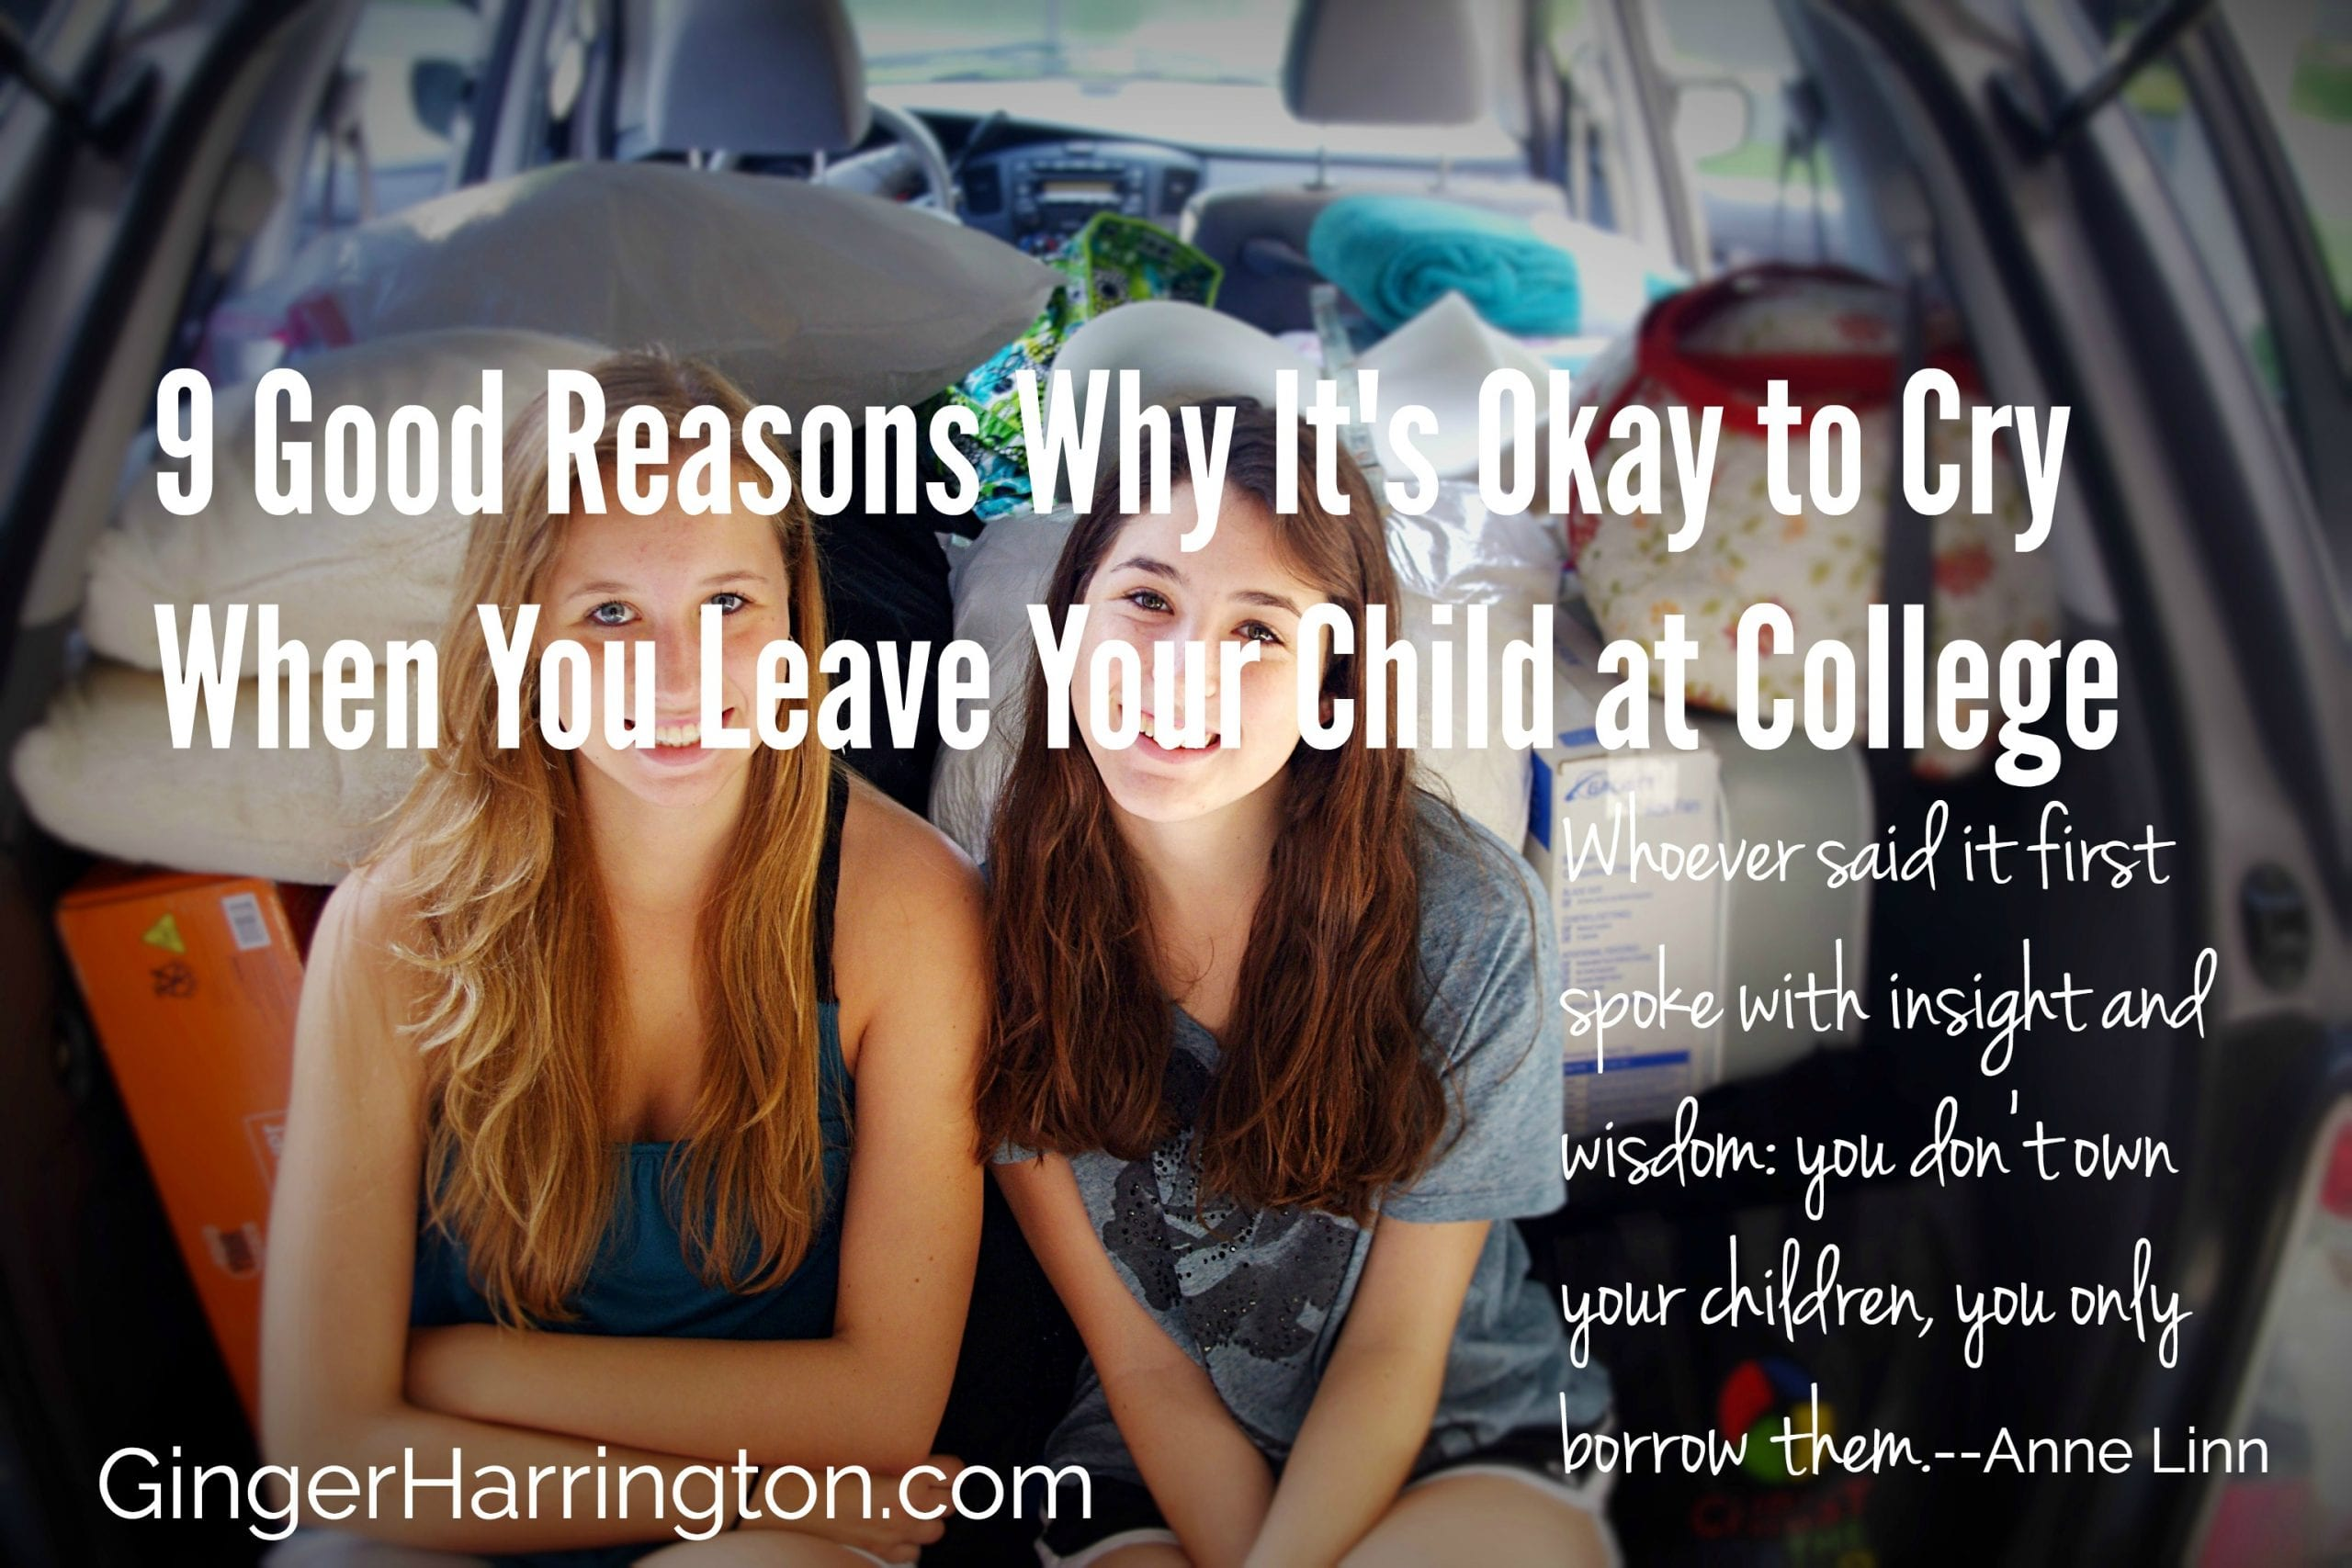 9 Good Reasons Why It's Okay to Cry When You Leave Your Child at College